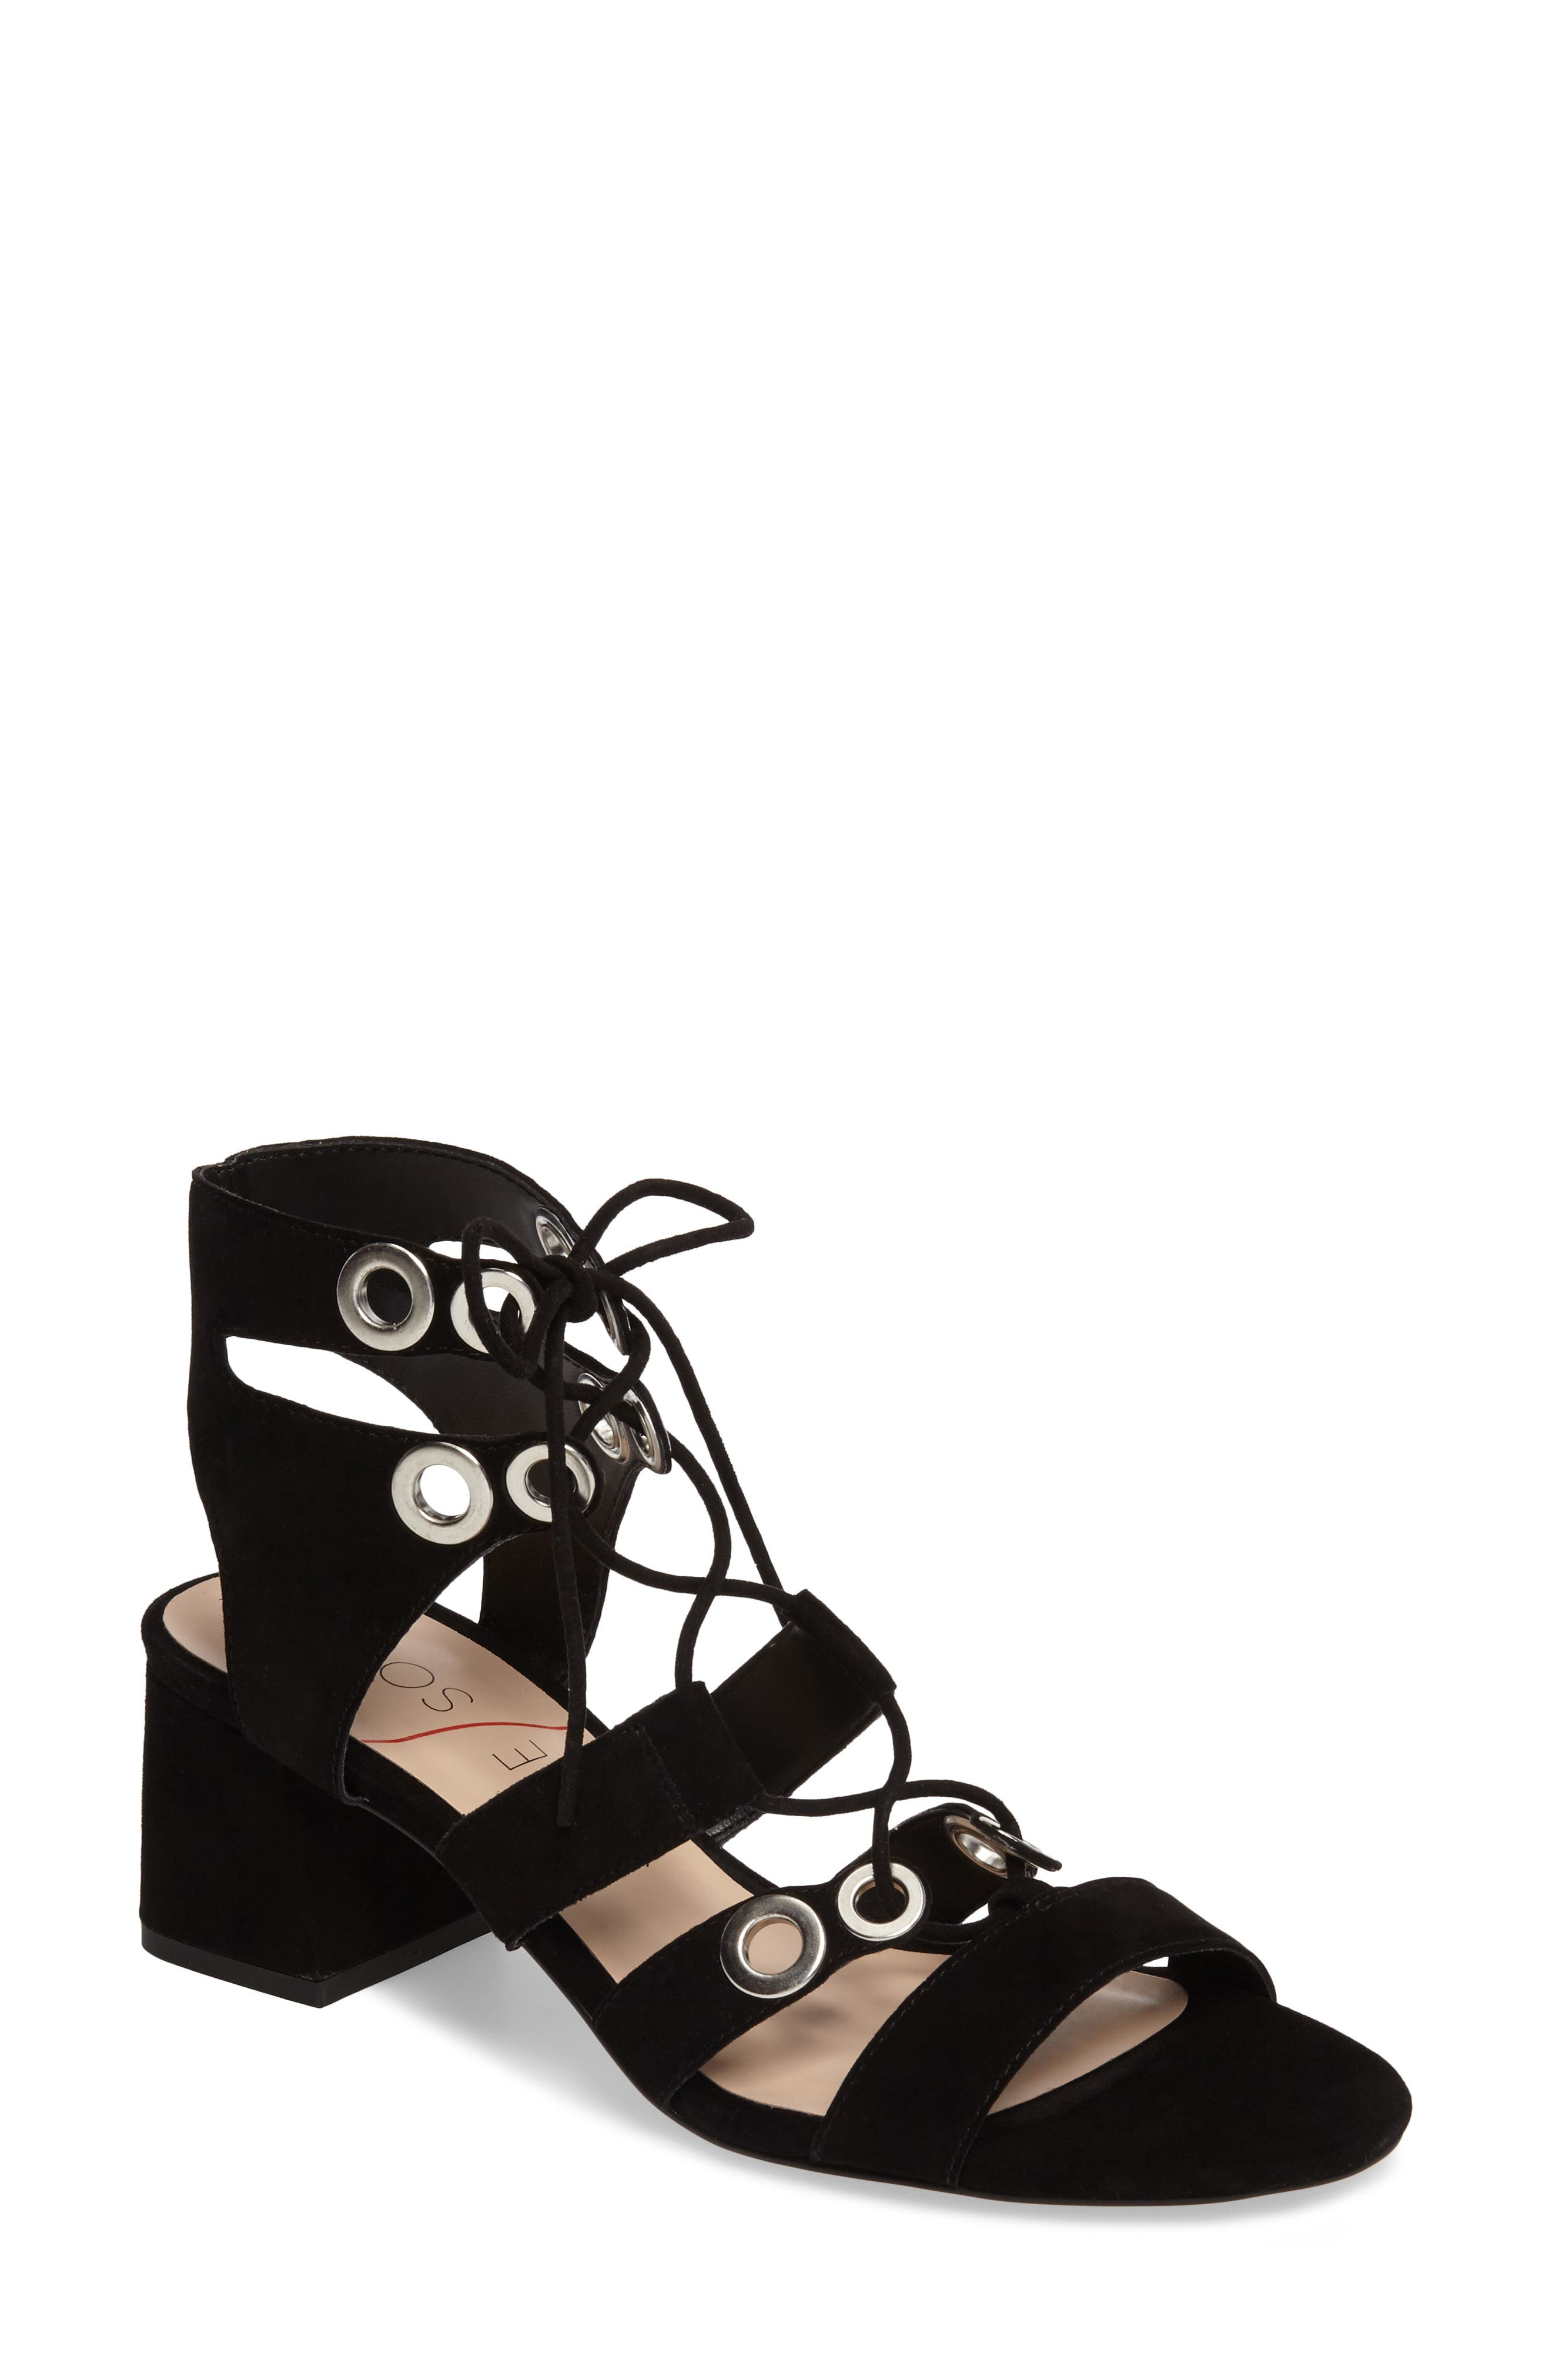 Rosemary Lace-Up Sandal,                             Main thumbnail 1, color,                             Black